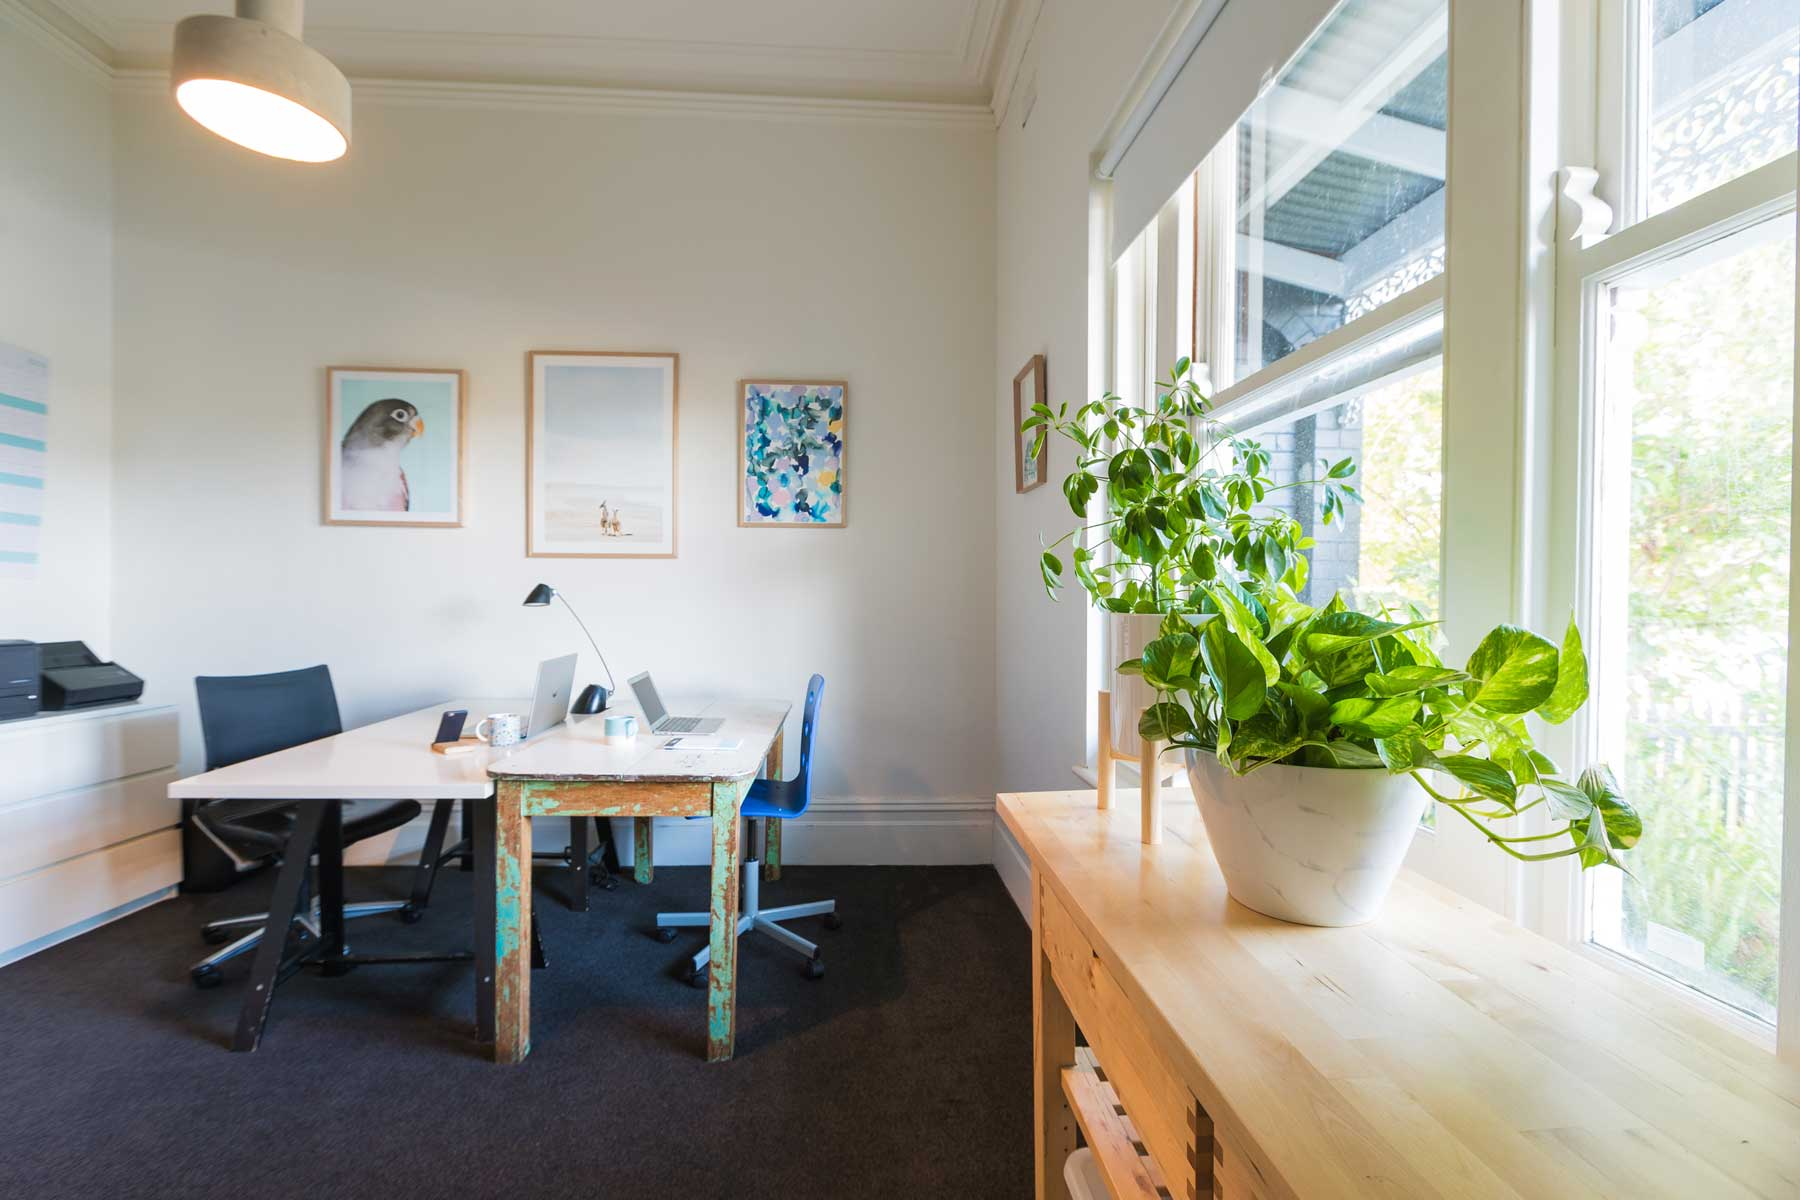 Lauras scandi home office - after - window